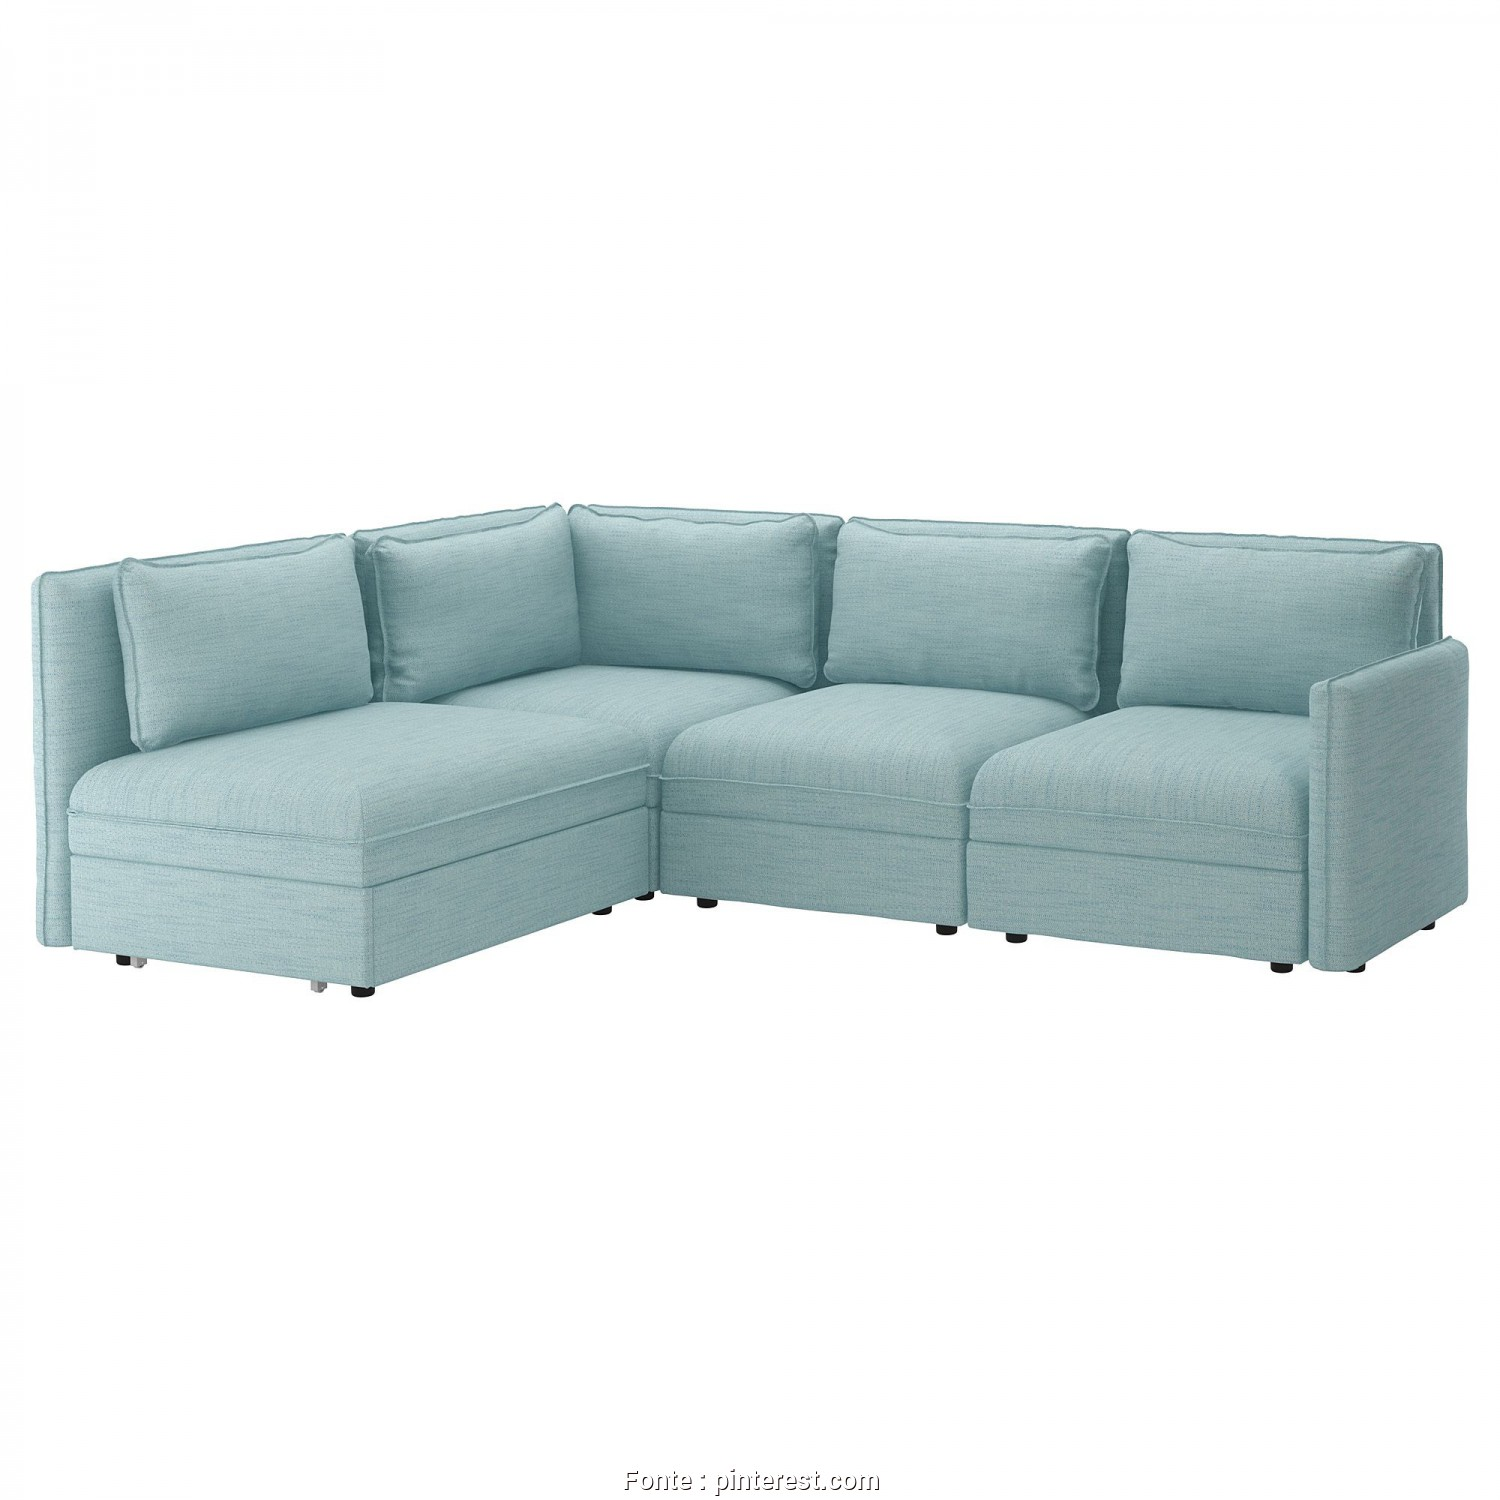 Ikea Backabro 3 Posti, Grande VALLENTUNA, Sectional, 3 Seat W Slpr Sect -, Storage/Hillared Light Blue, IKEA